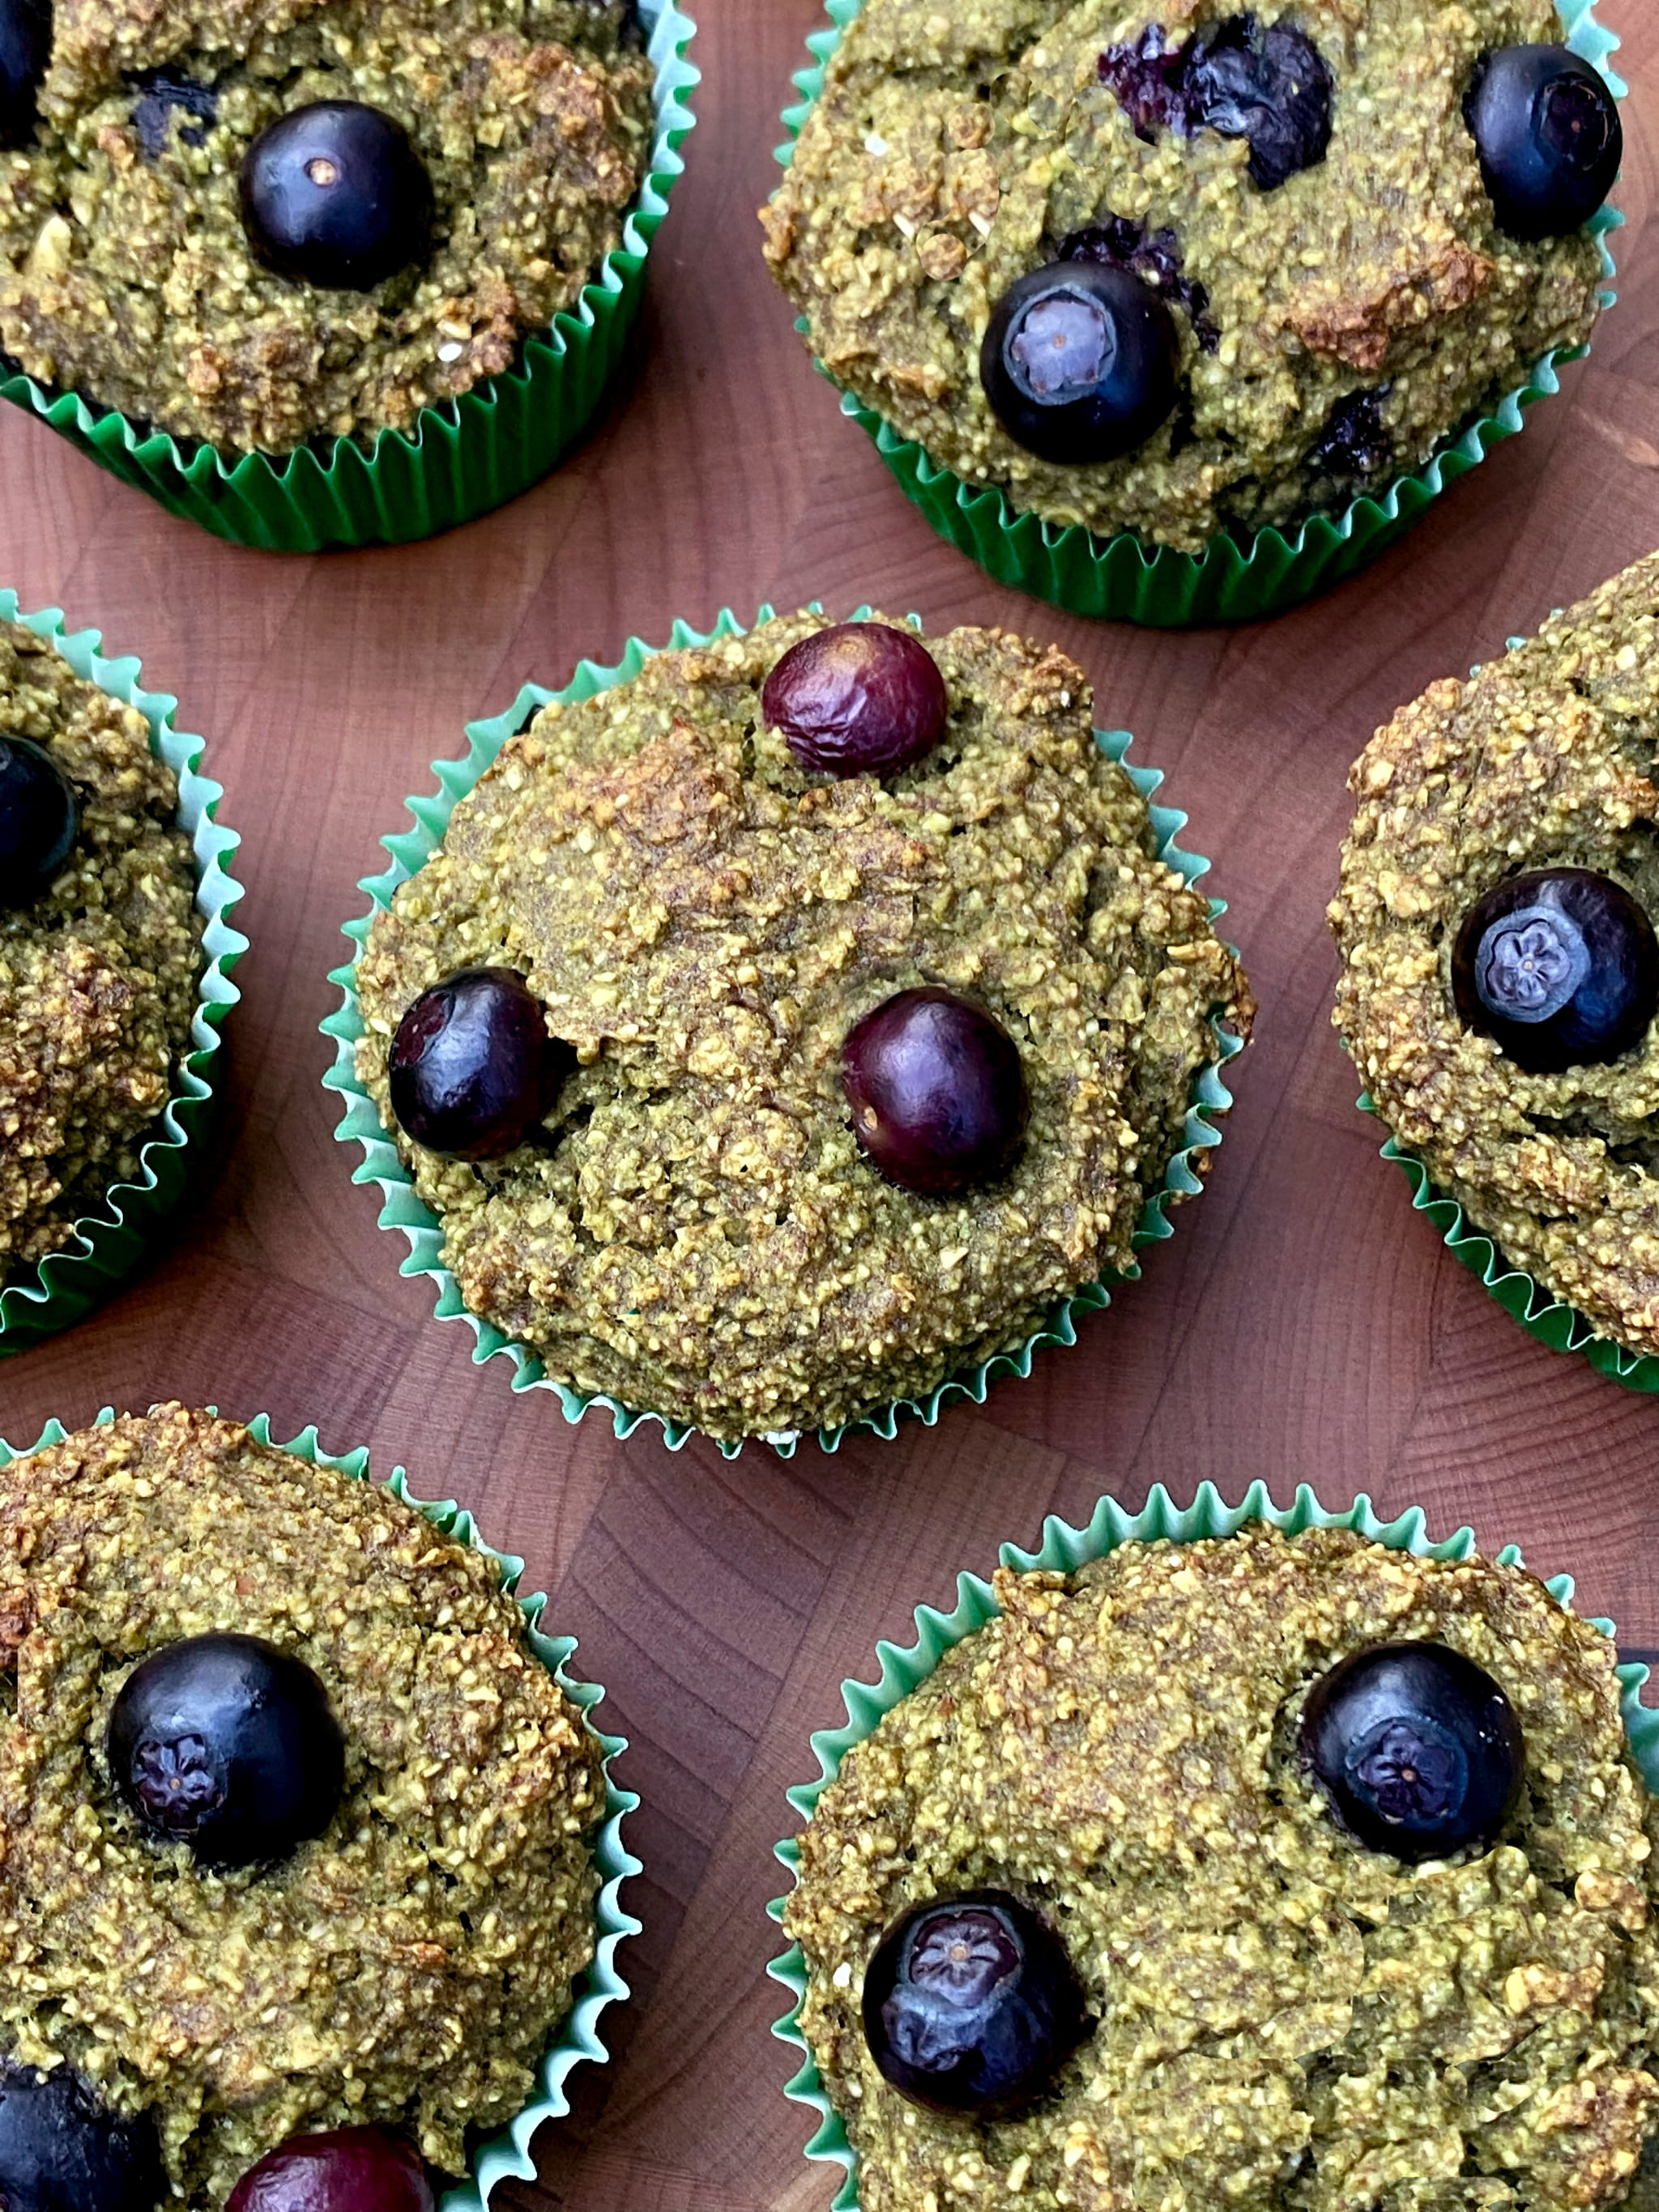 Refined-Sugar-Free Banana Blueberry Spinach Muffins 9